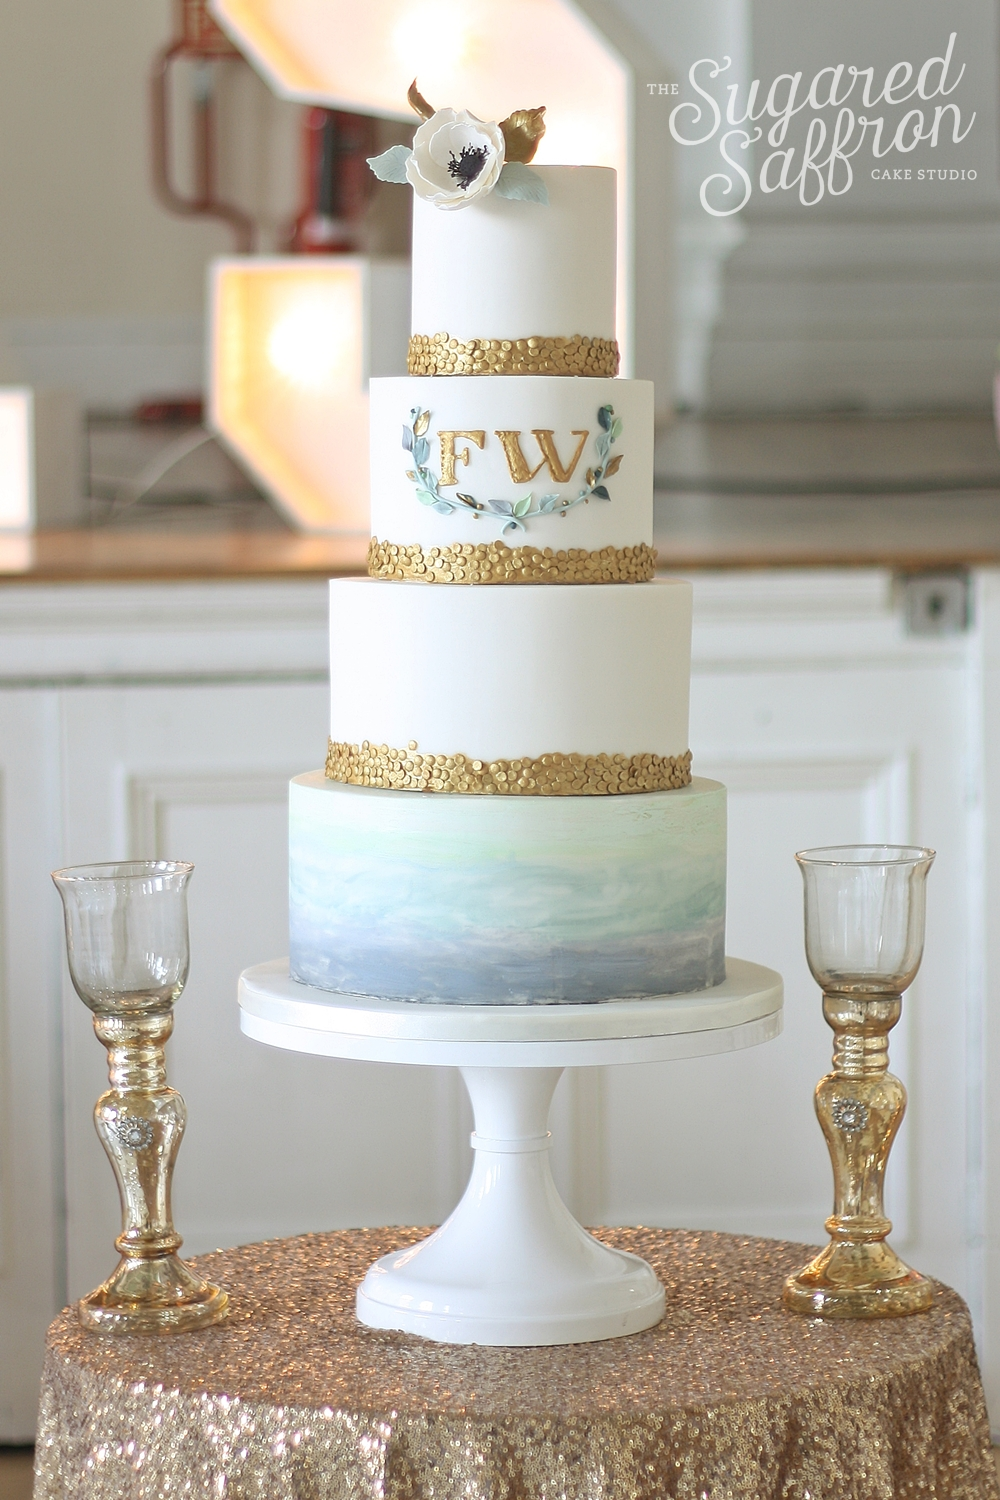 Watercolour green and blue wedding cake with gold sequins and monogram wreath